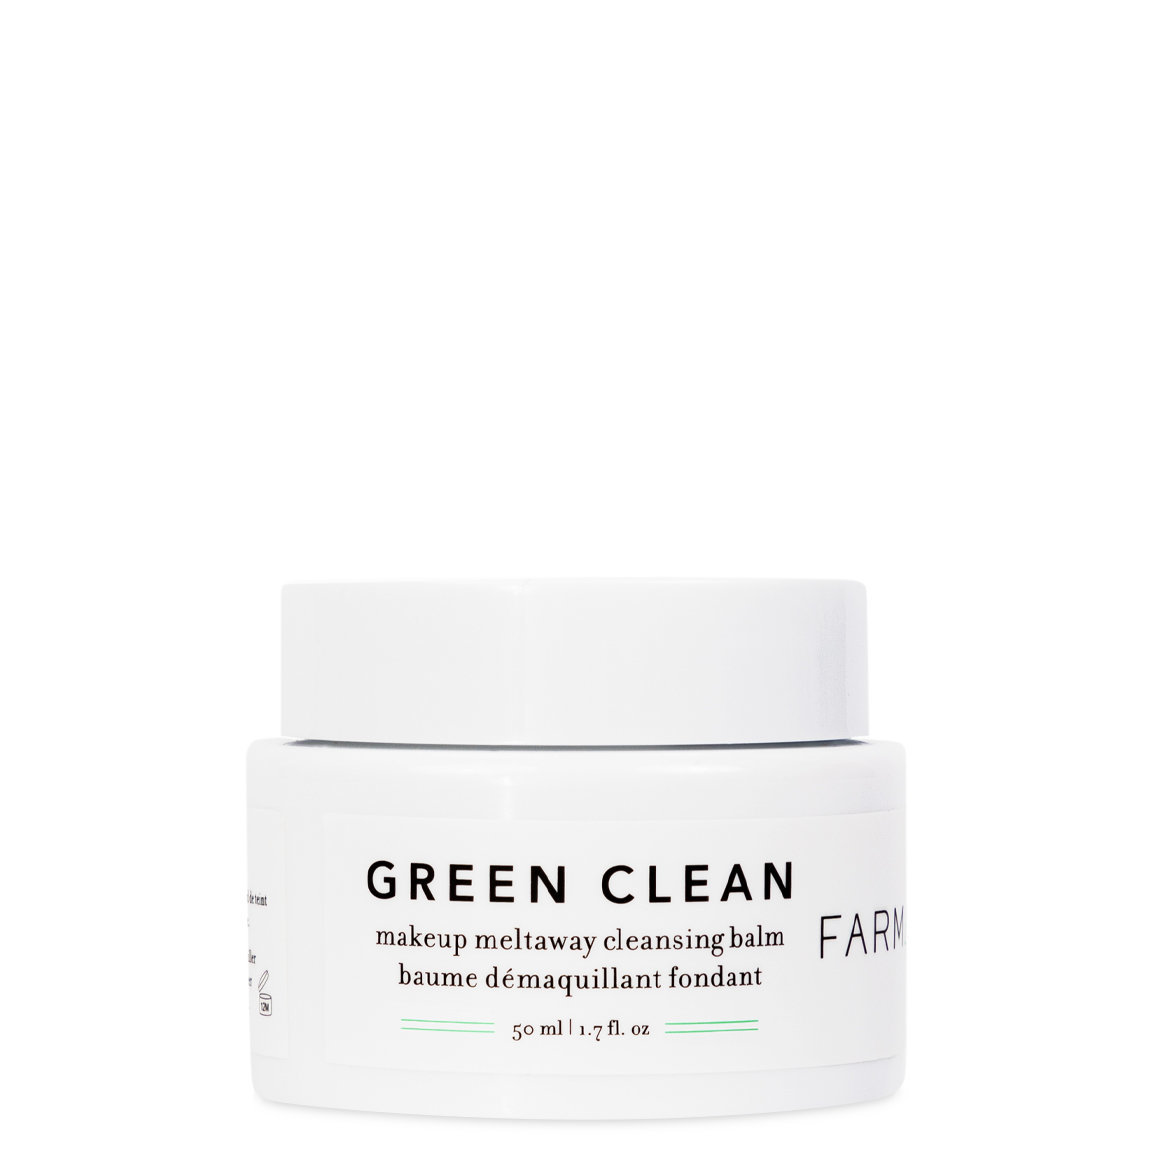 Farmacy Green Clean Makeup Meltaway Cleansing Balm 1.7 oz alternative view 1 - product swatch.